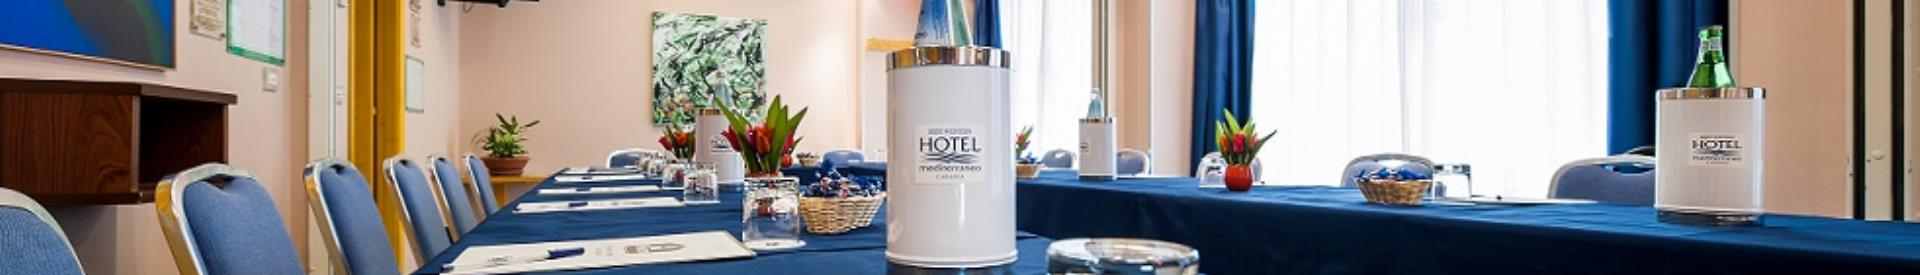 Hotel Mediterraneo, Hotel 3 star hotel in Catania, has equipped meeting rooms for your conferences